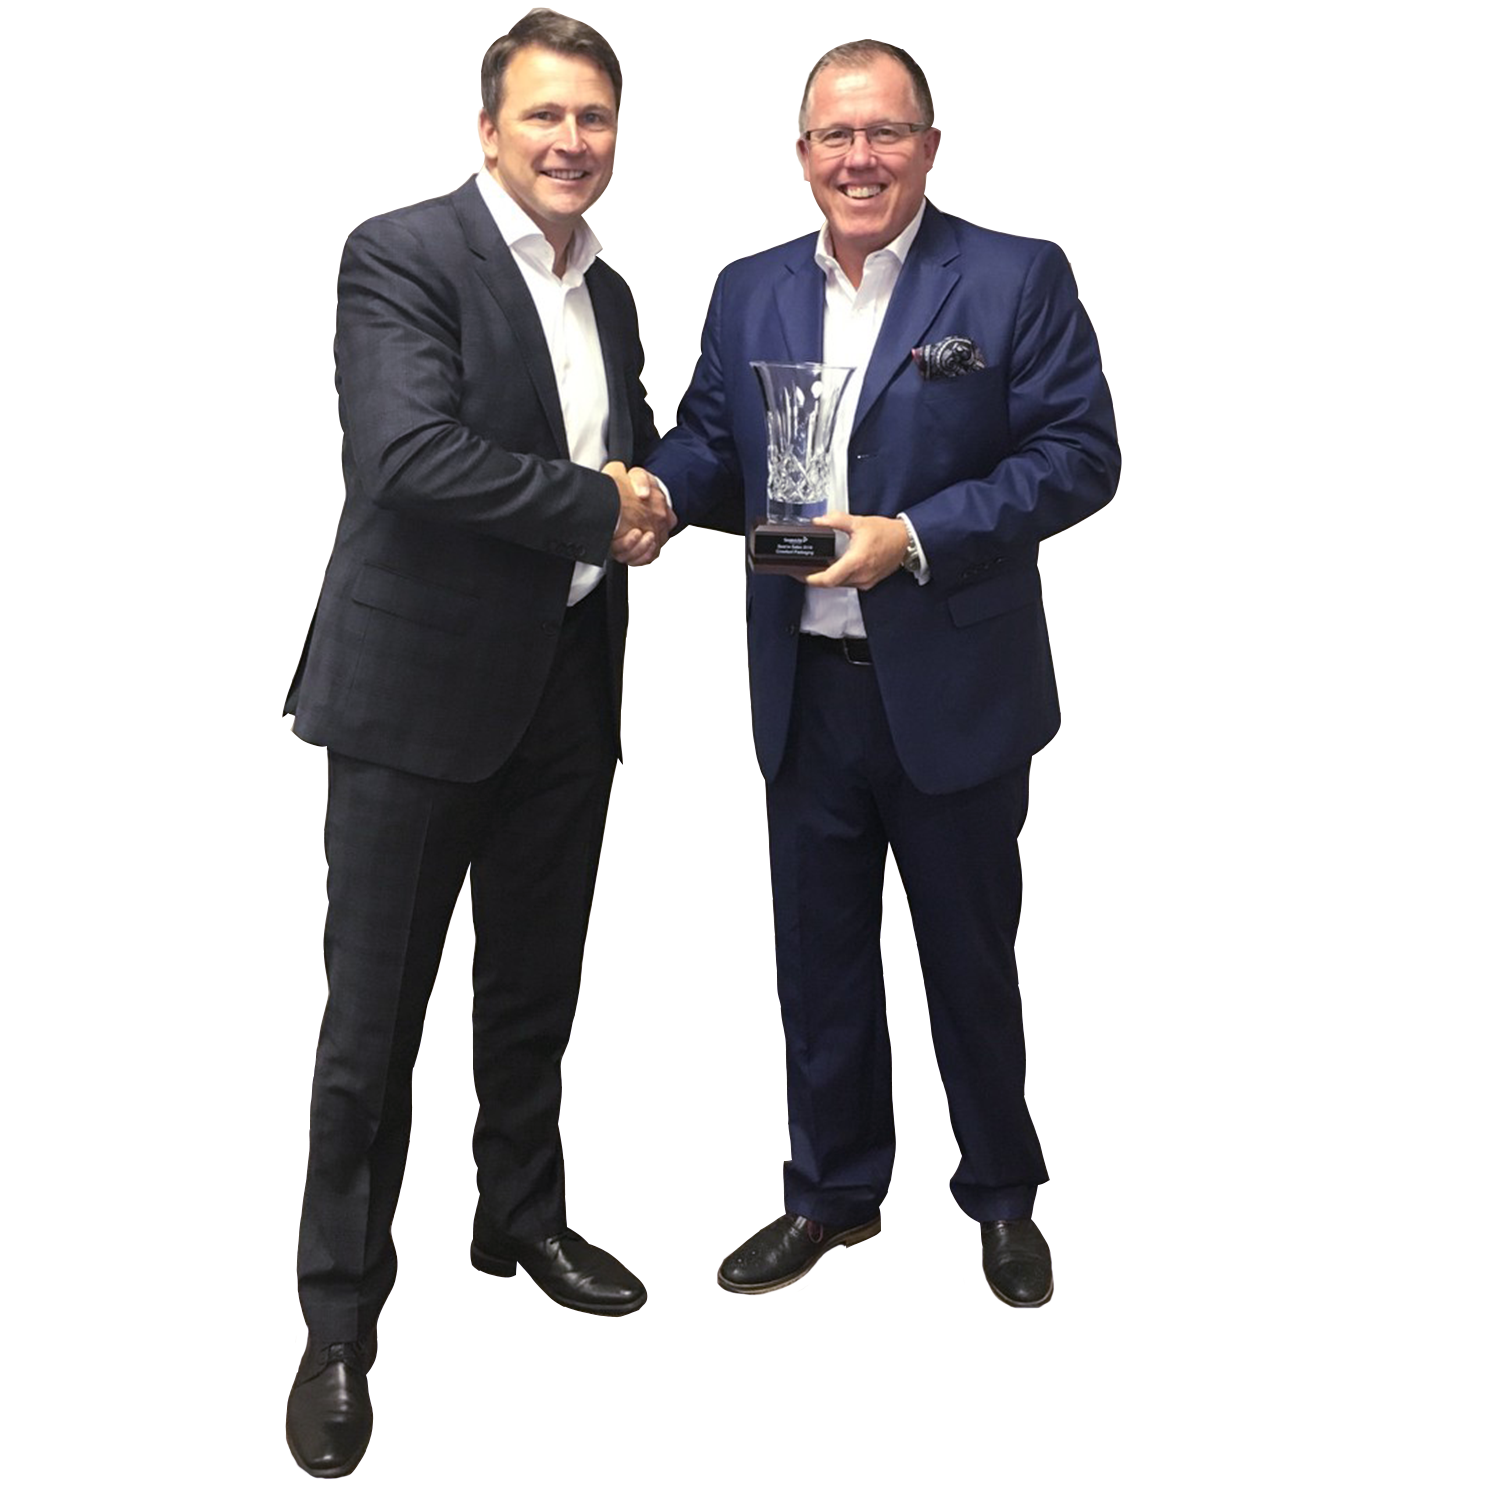 Andy Craig, Vice President of Sales (Right) Receiving Award from Eric Proulx for Best in Sales 2016 from Sealed Air